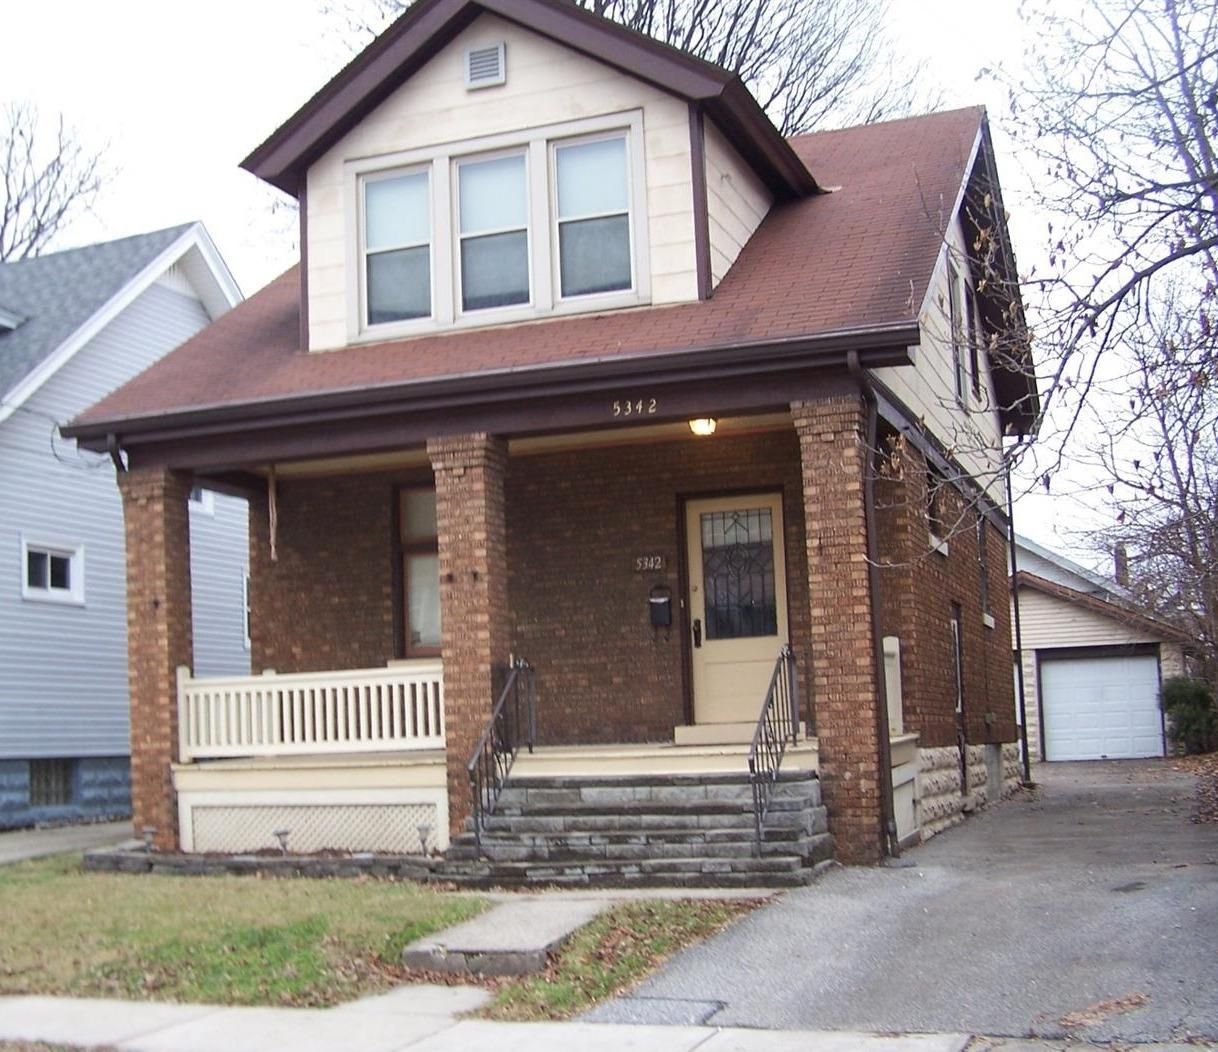 Property for sale at 5342 E Hunter Avenue, Norwood,  OH 45212